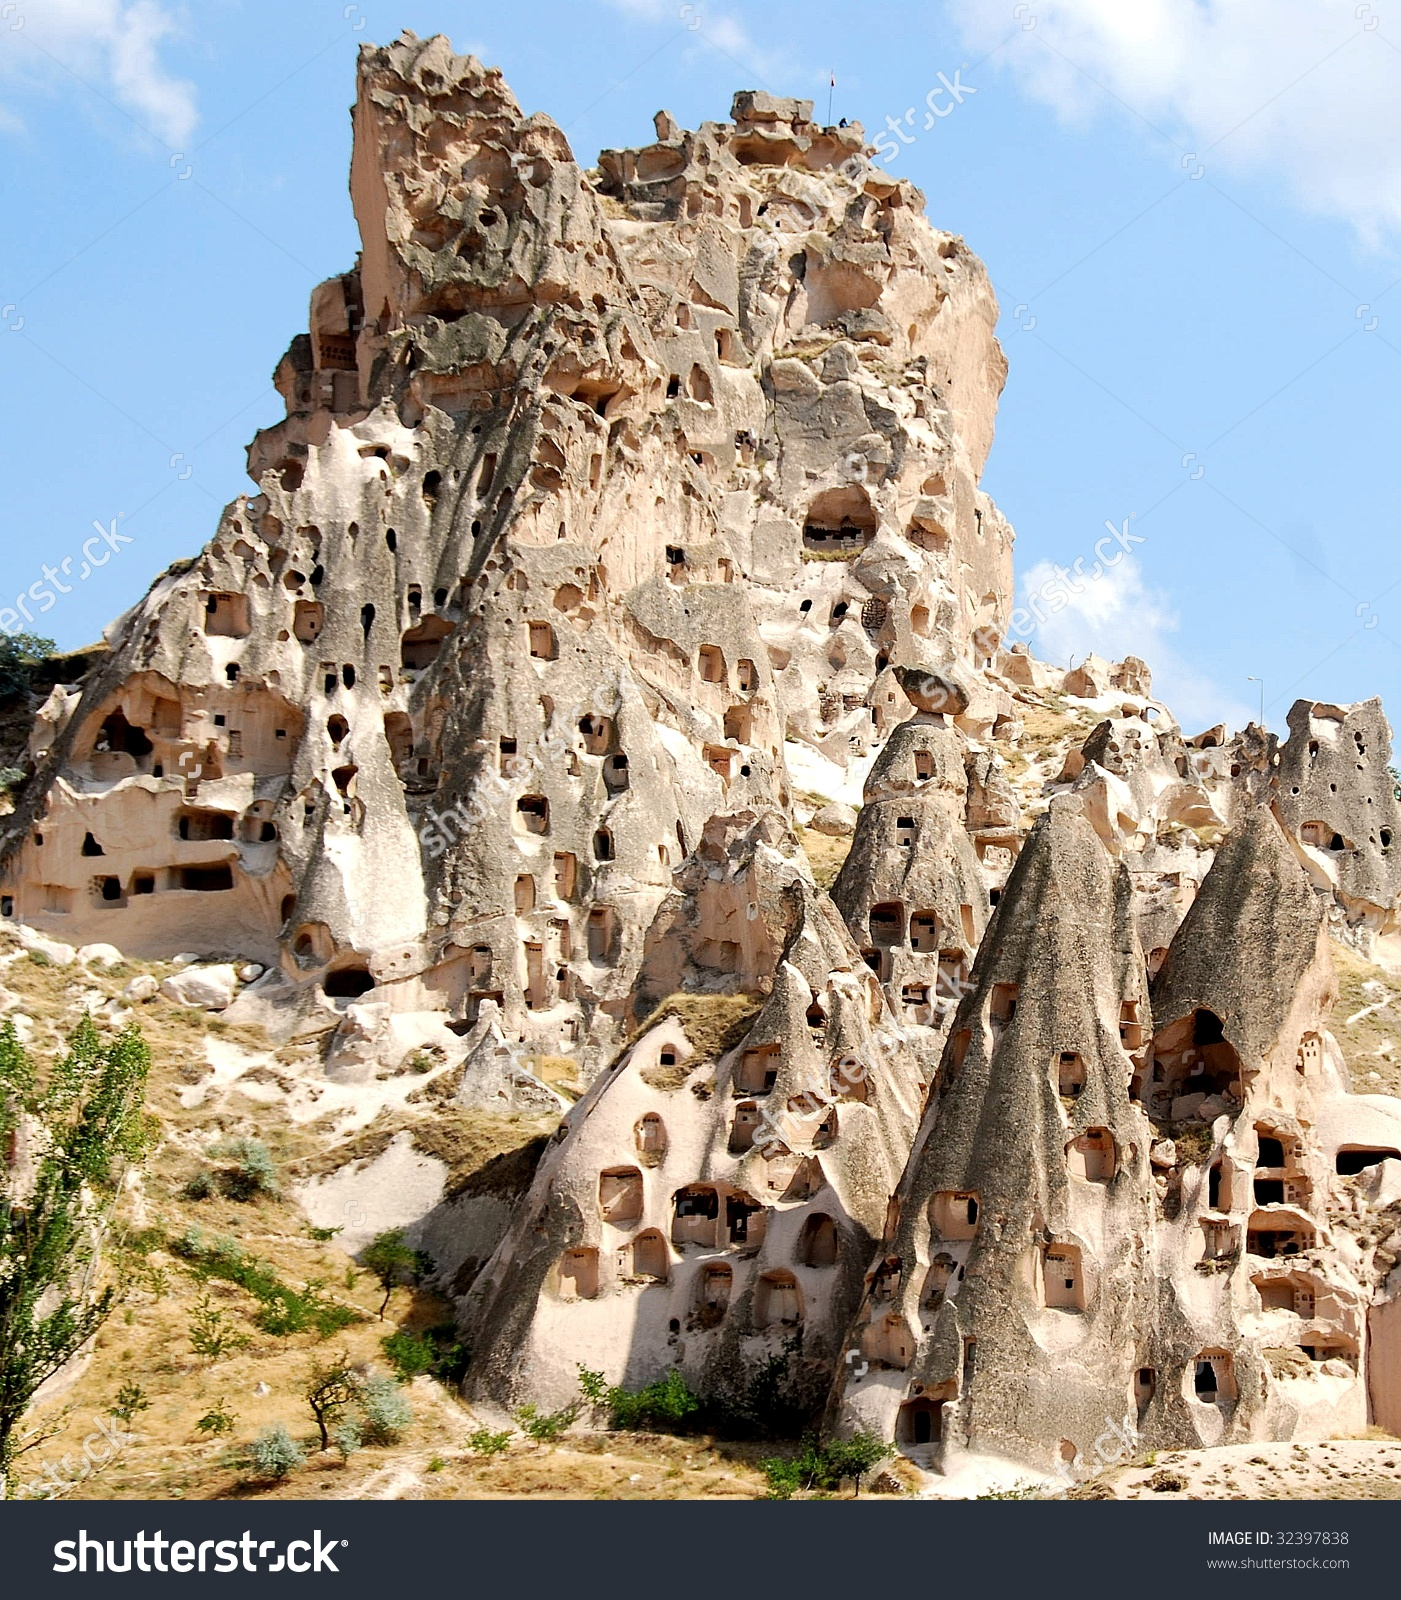 Hill Showing Uchisar Castle Cave Houses Stock Photo 32397838.